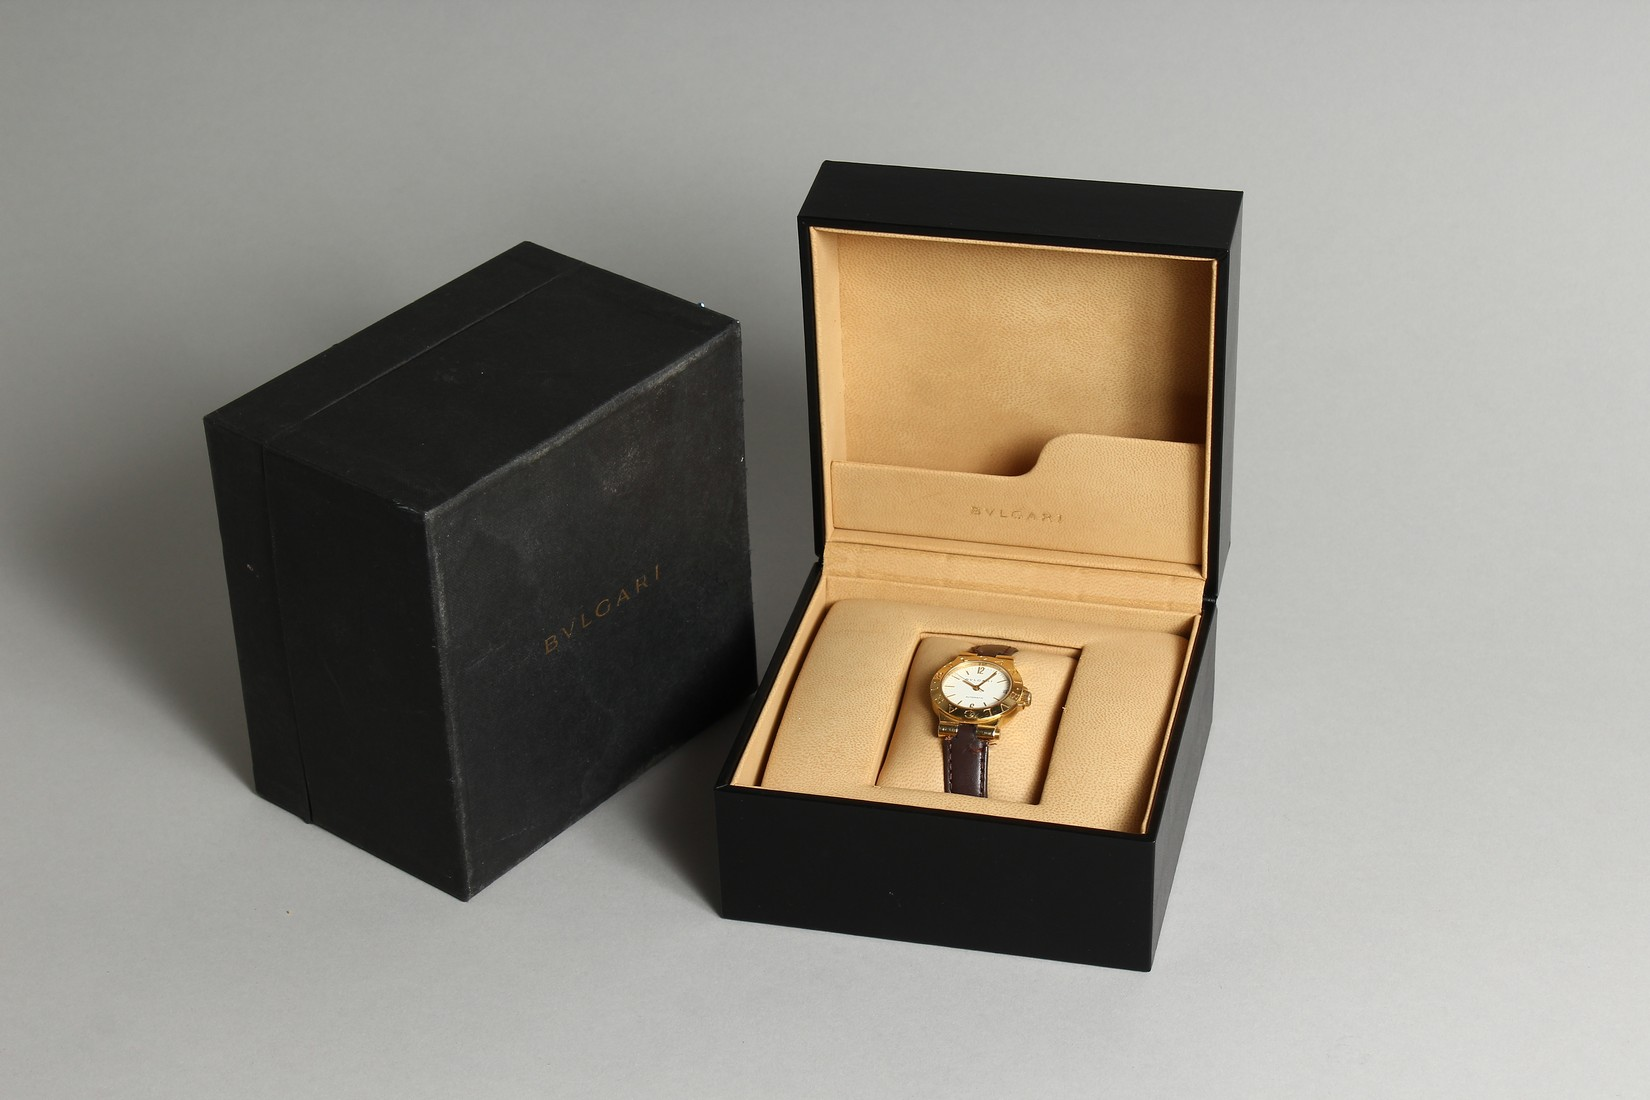 AN 18CT. GOLD BULGARI WRIST WATCH with leather strap, in original box. - Image 7 of 10